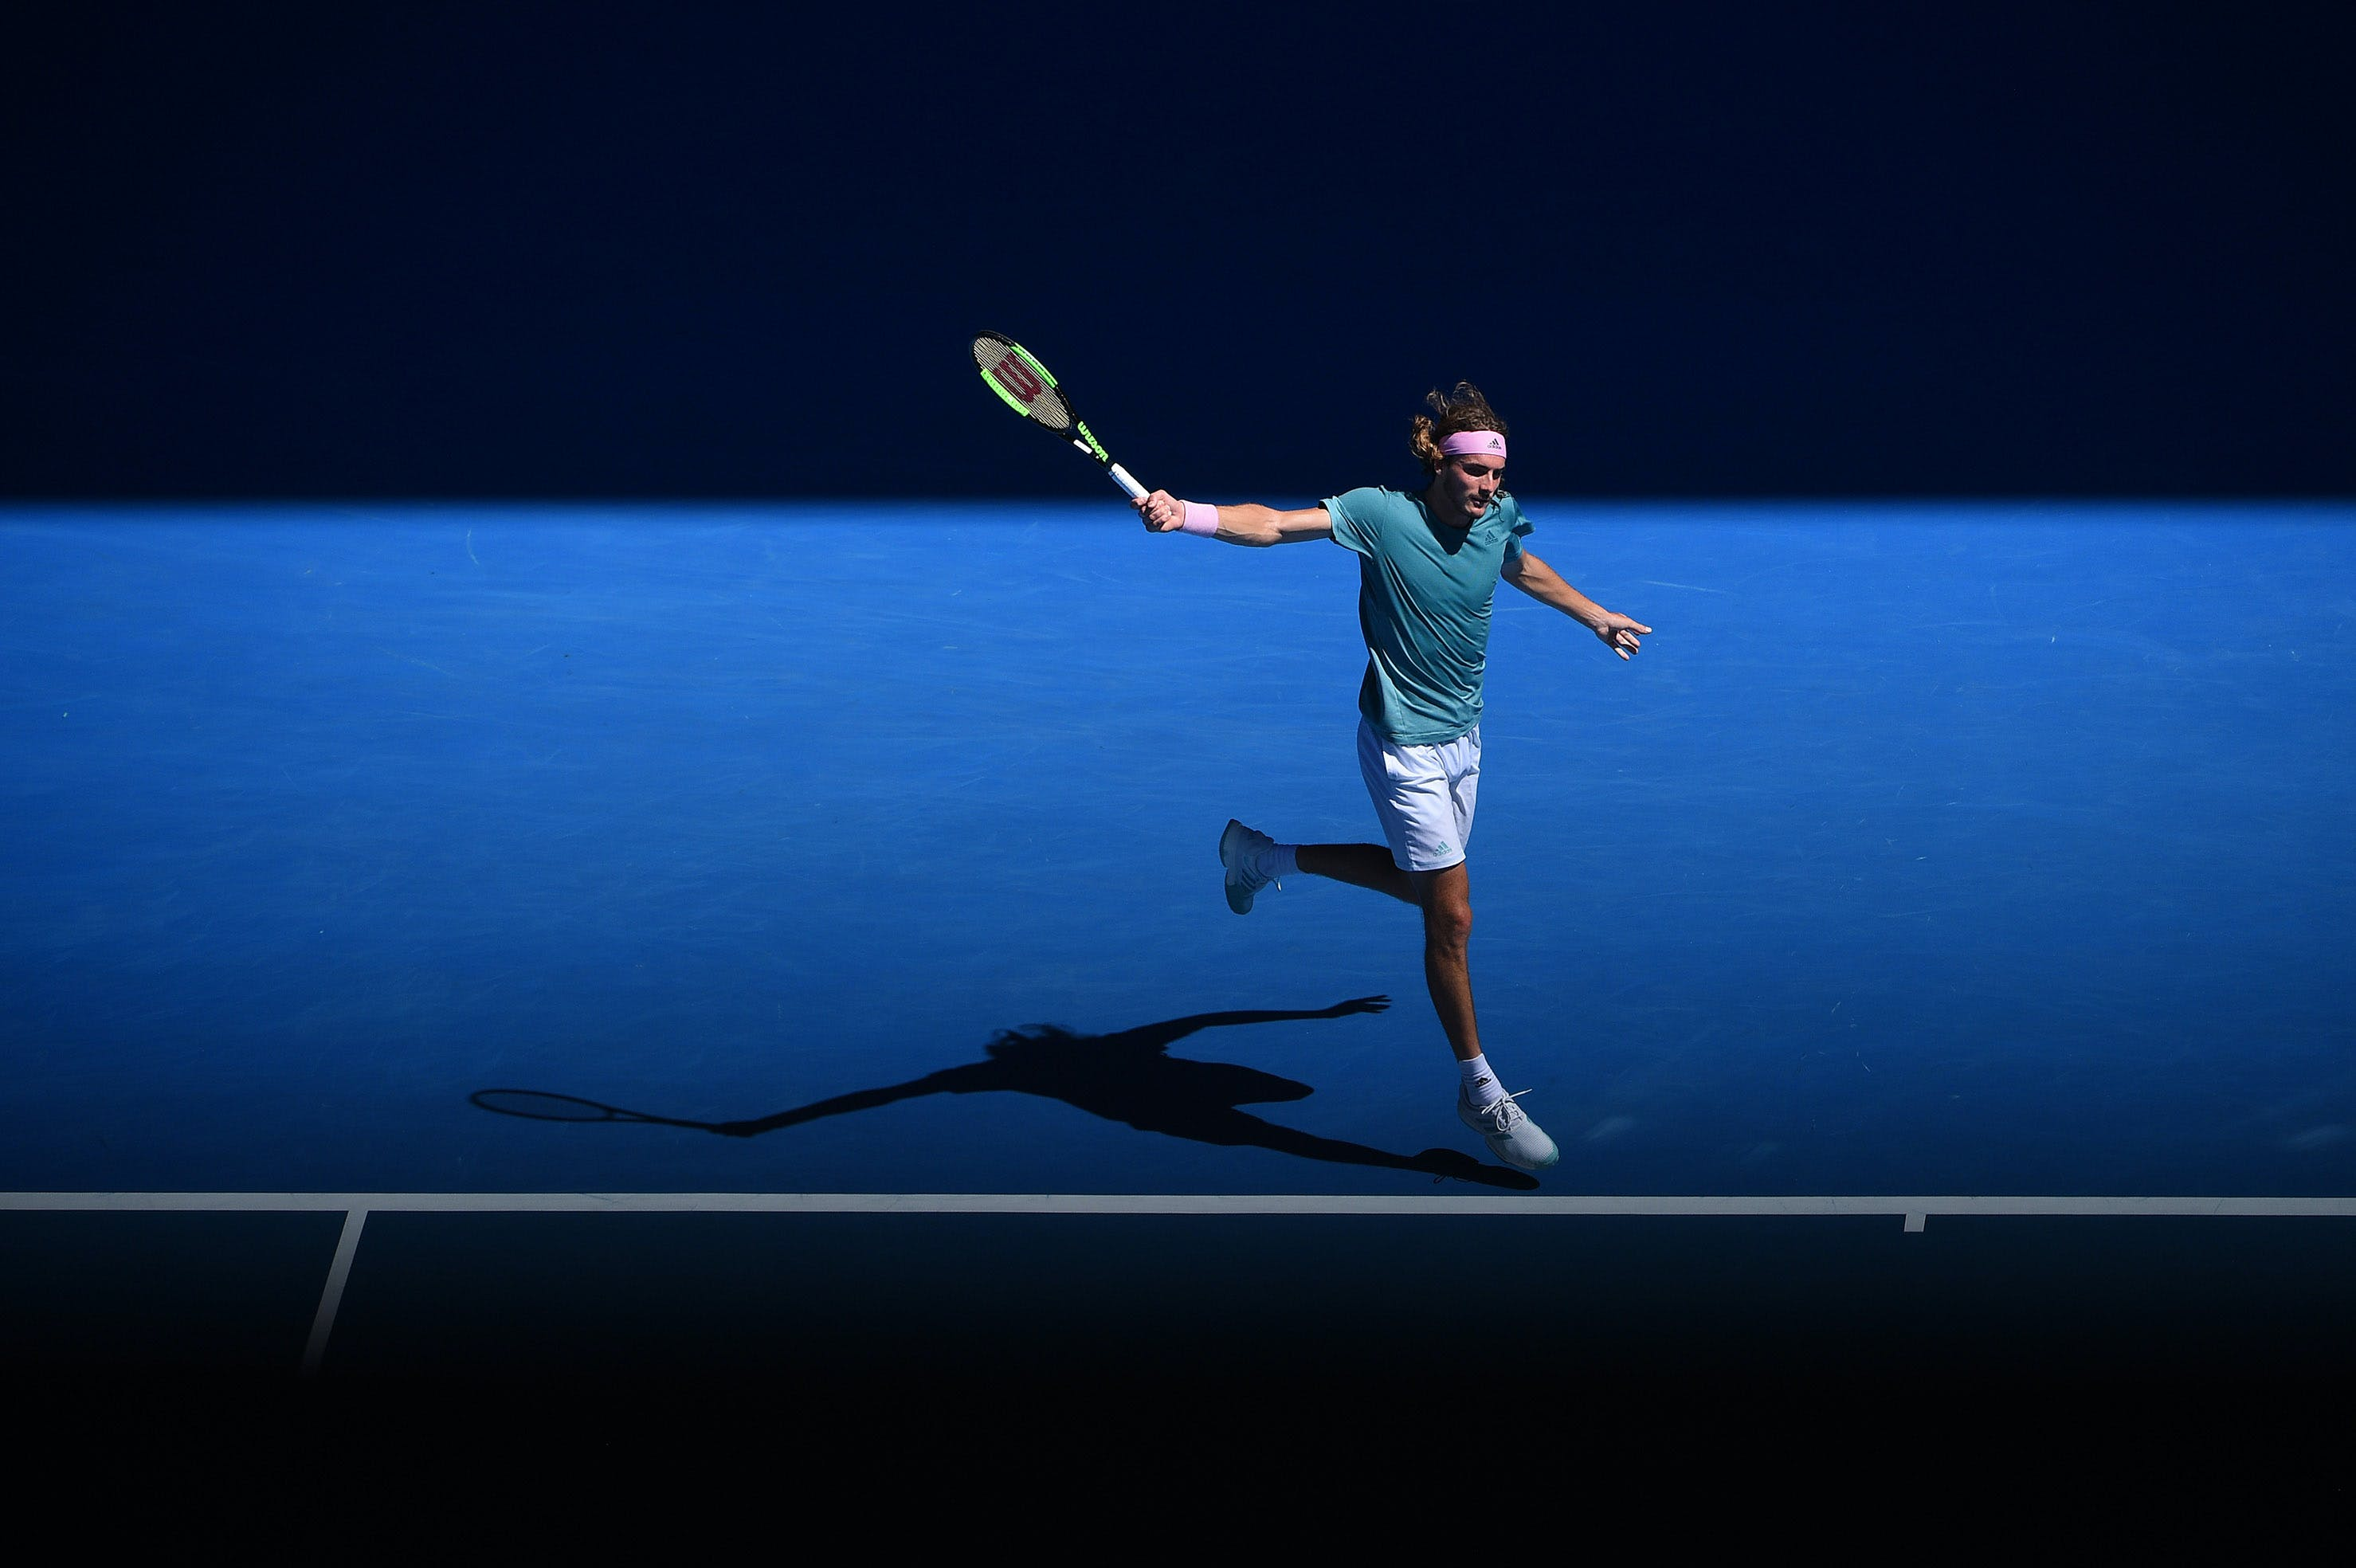 Stefanos Tsitsipas hitting a backhand in the beautiful light of the 2019 Australian Open